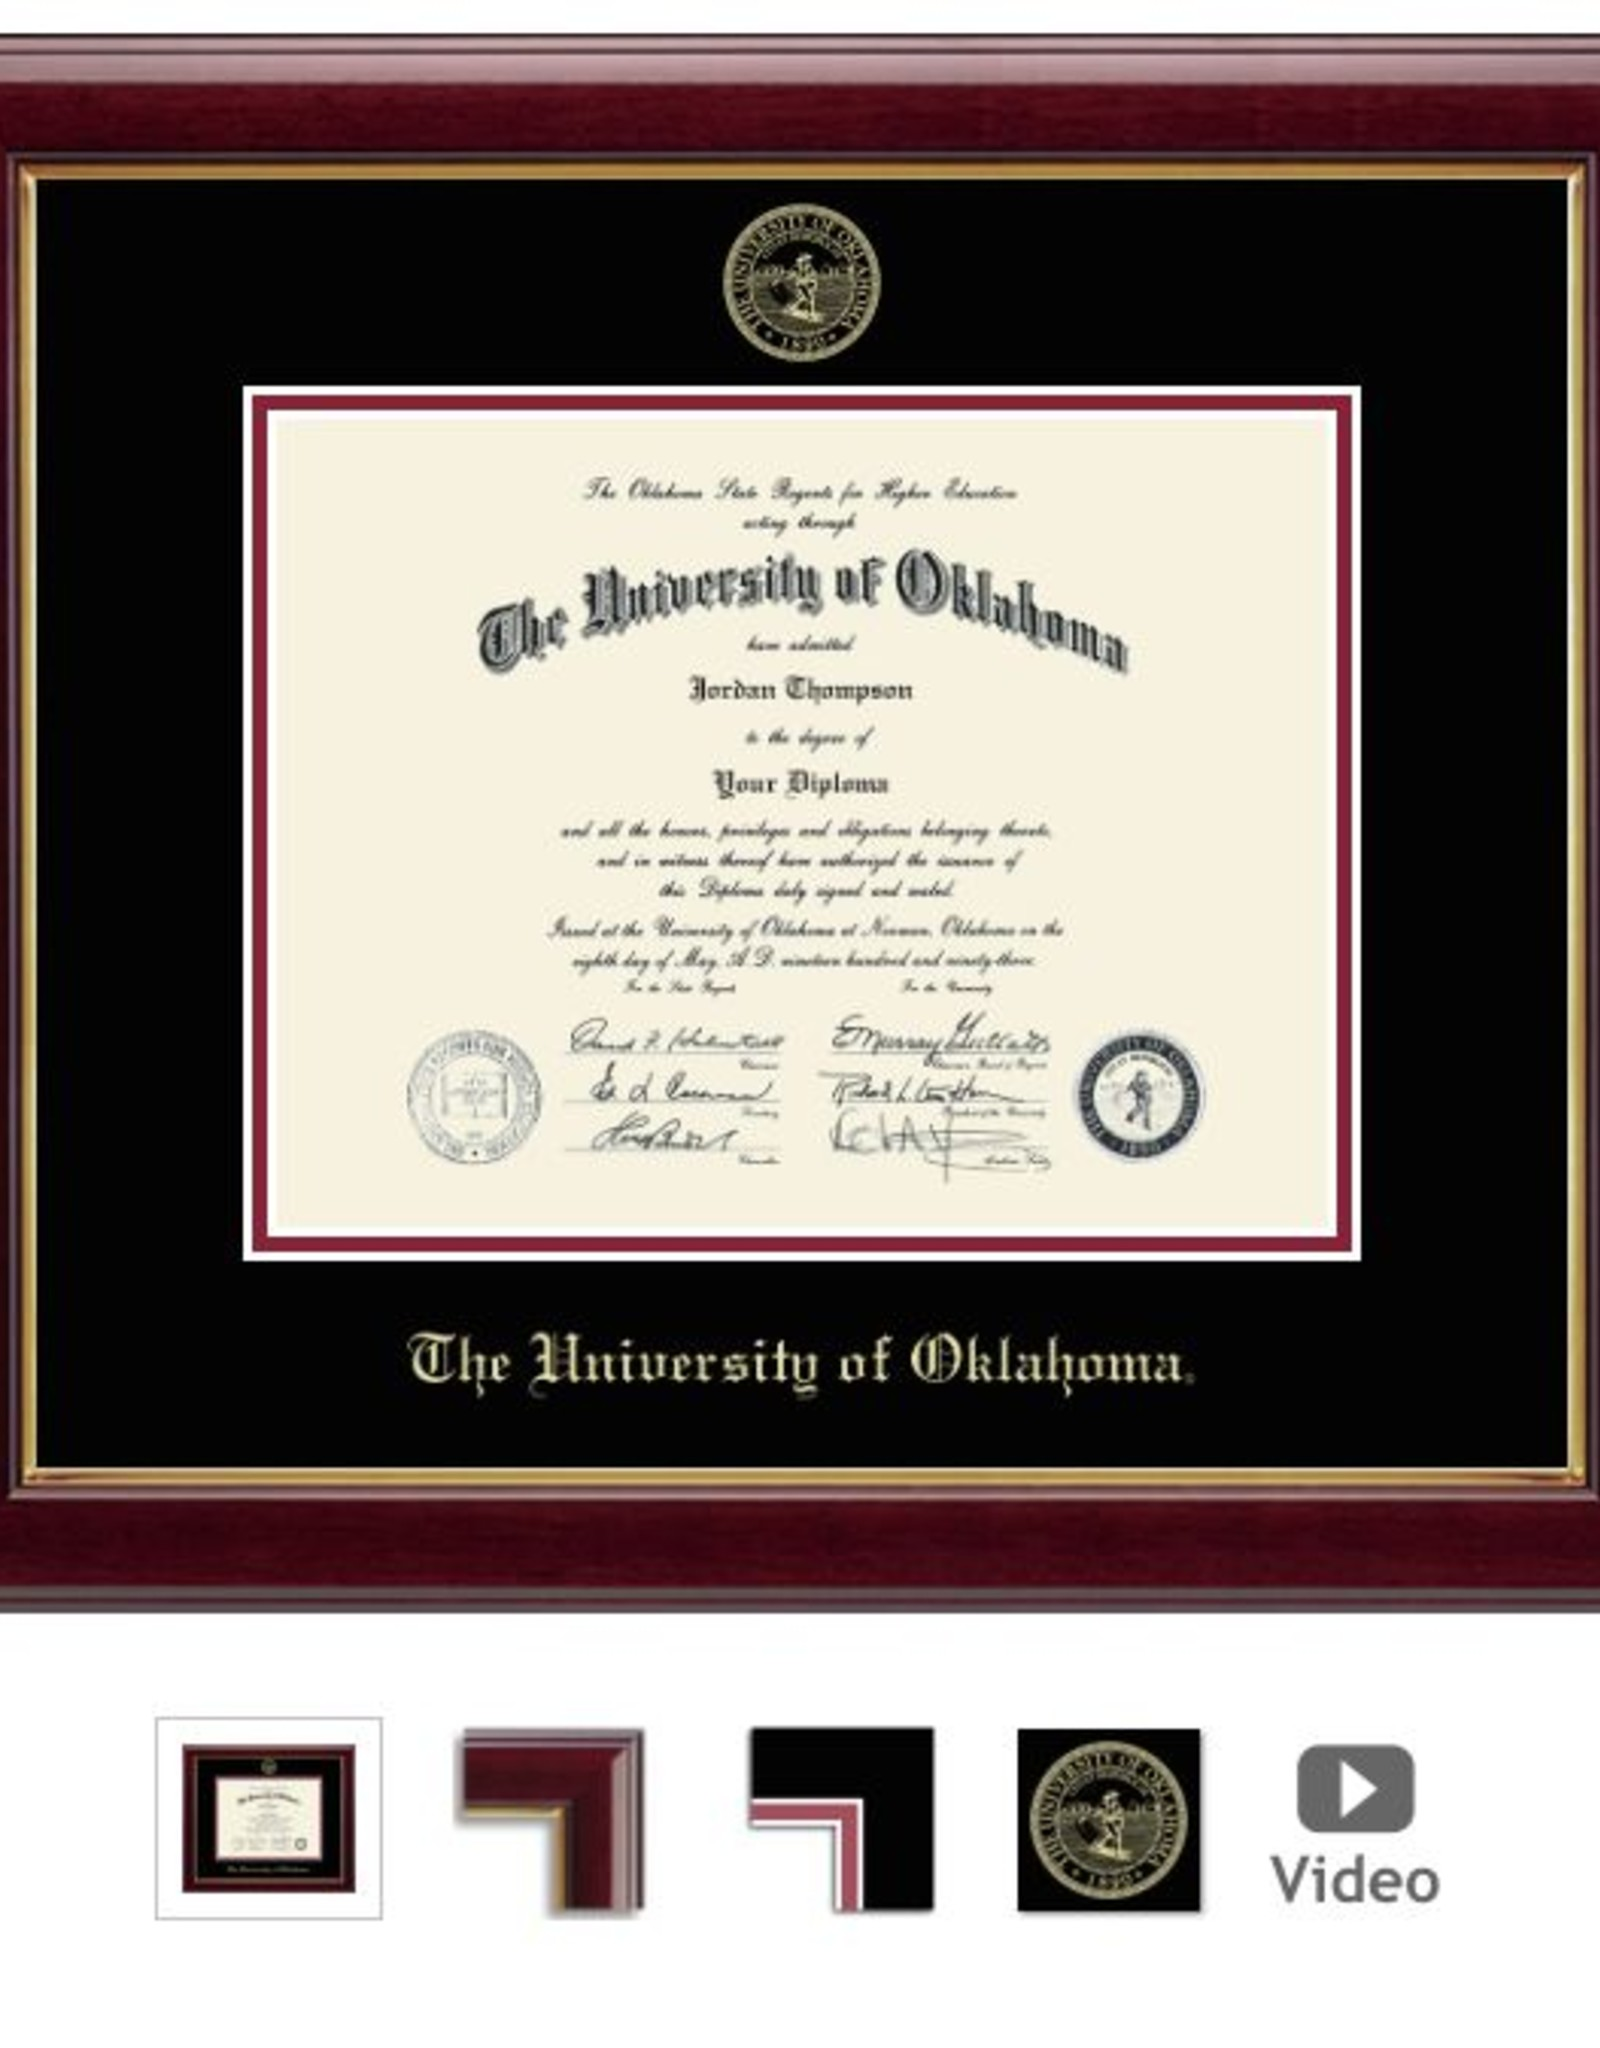 Church Hill Church Hill Embossed Gallery Diploma Frame Ph.D